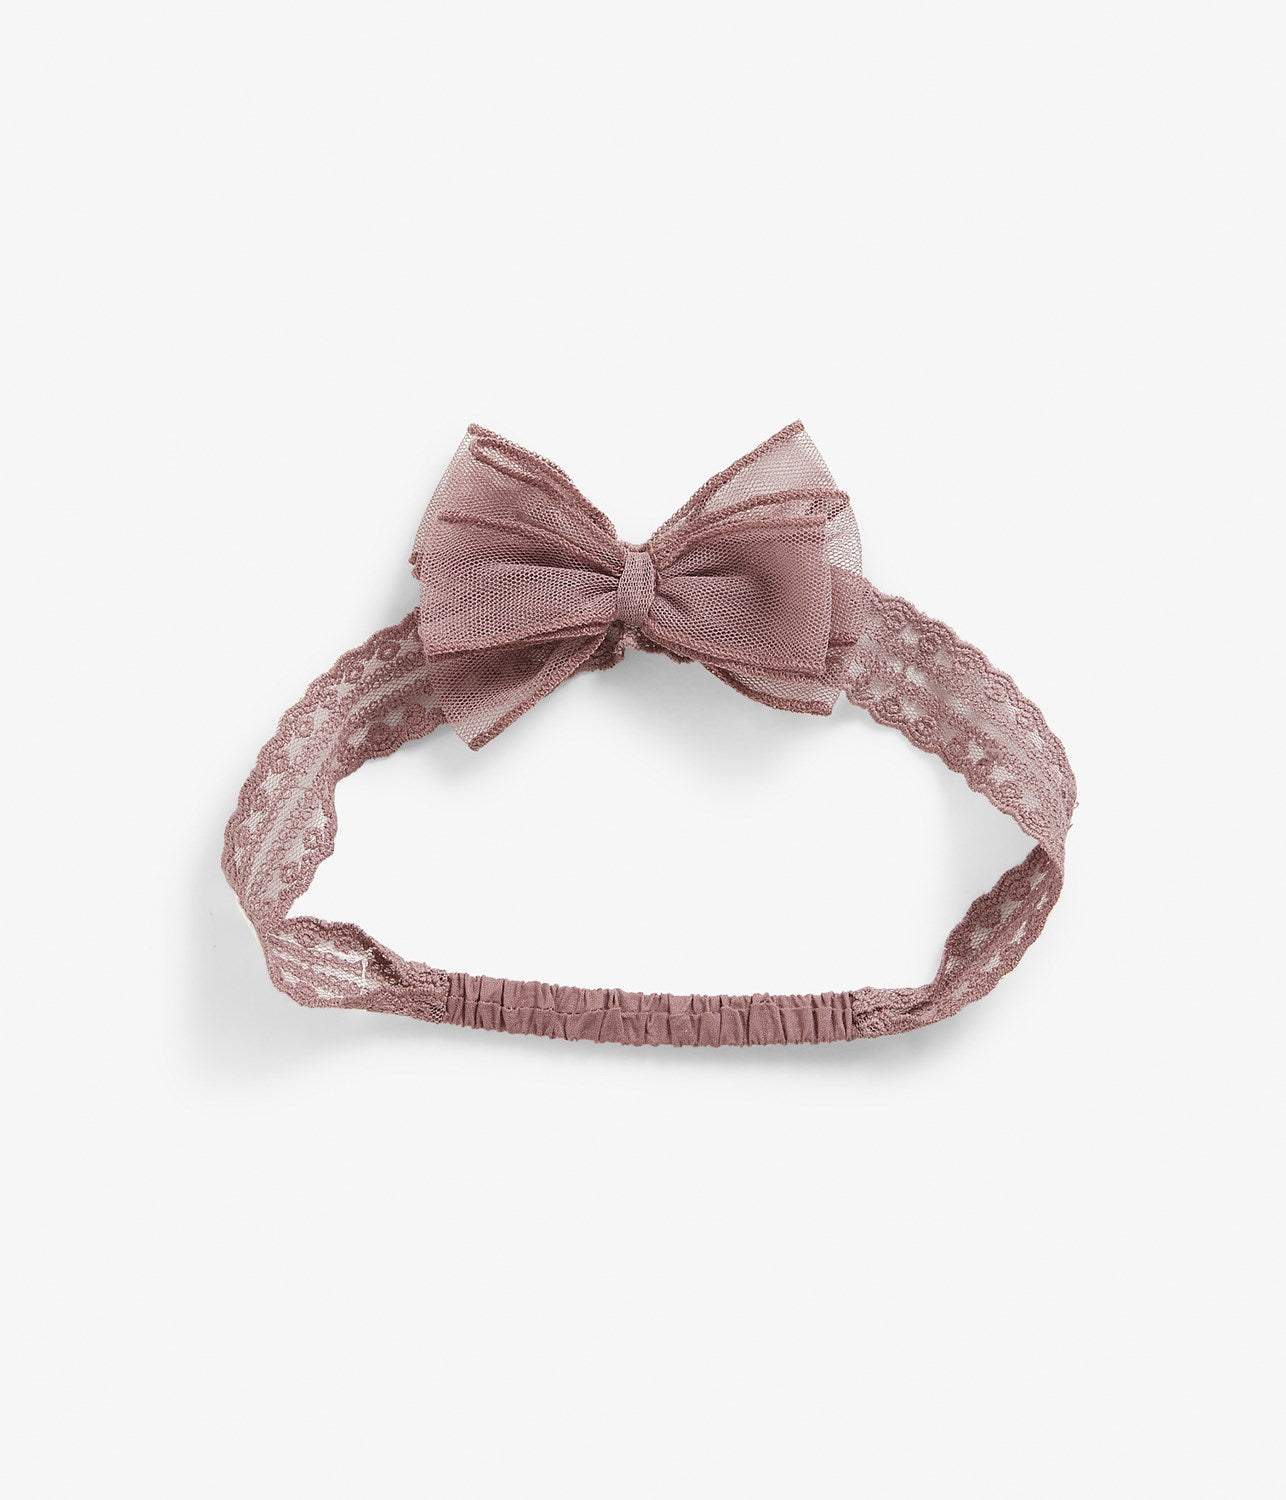 Pink lace headband with bow